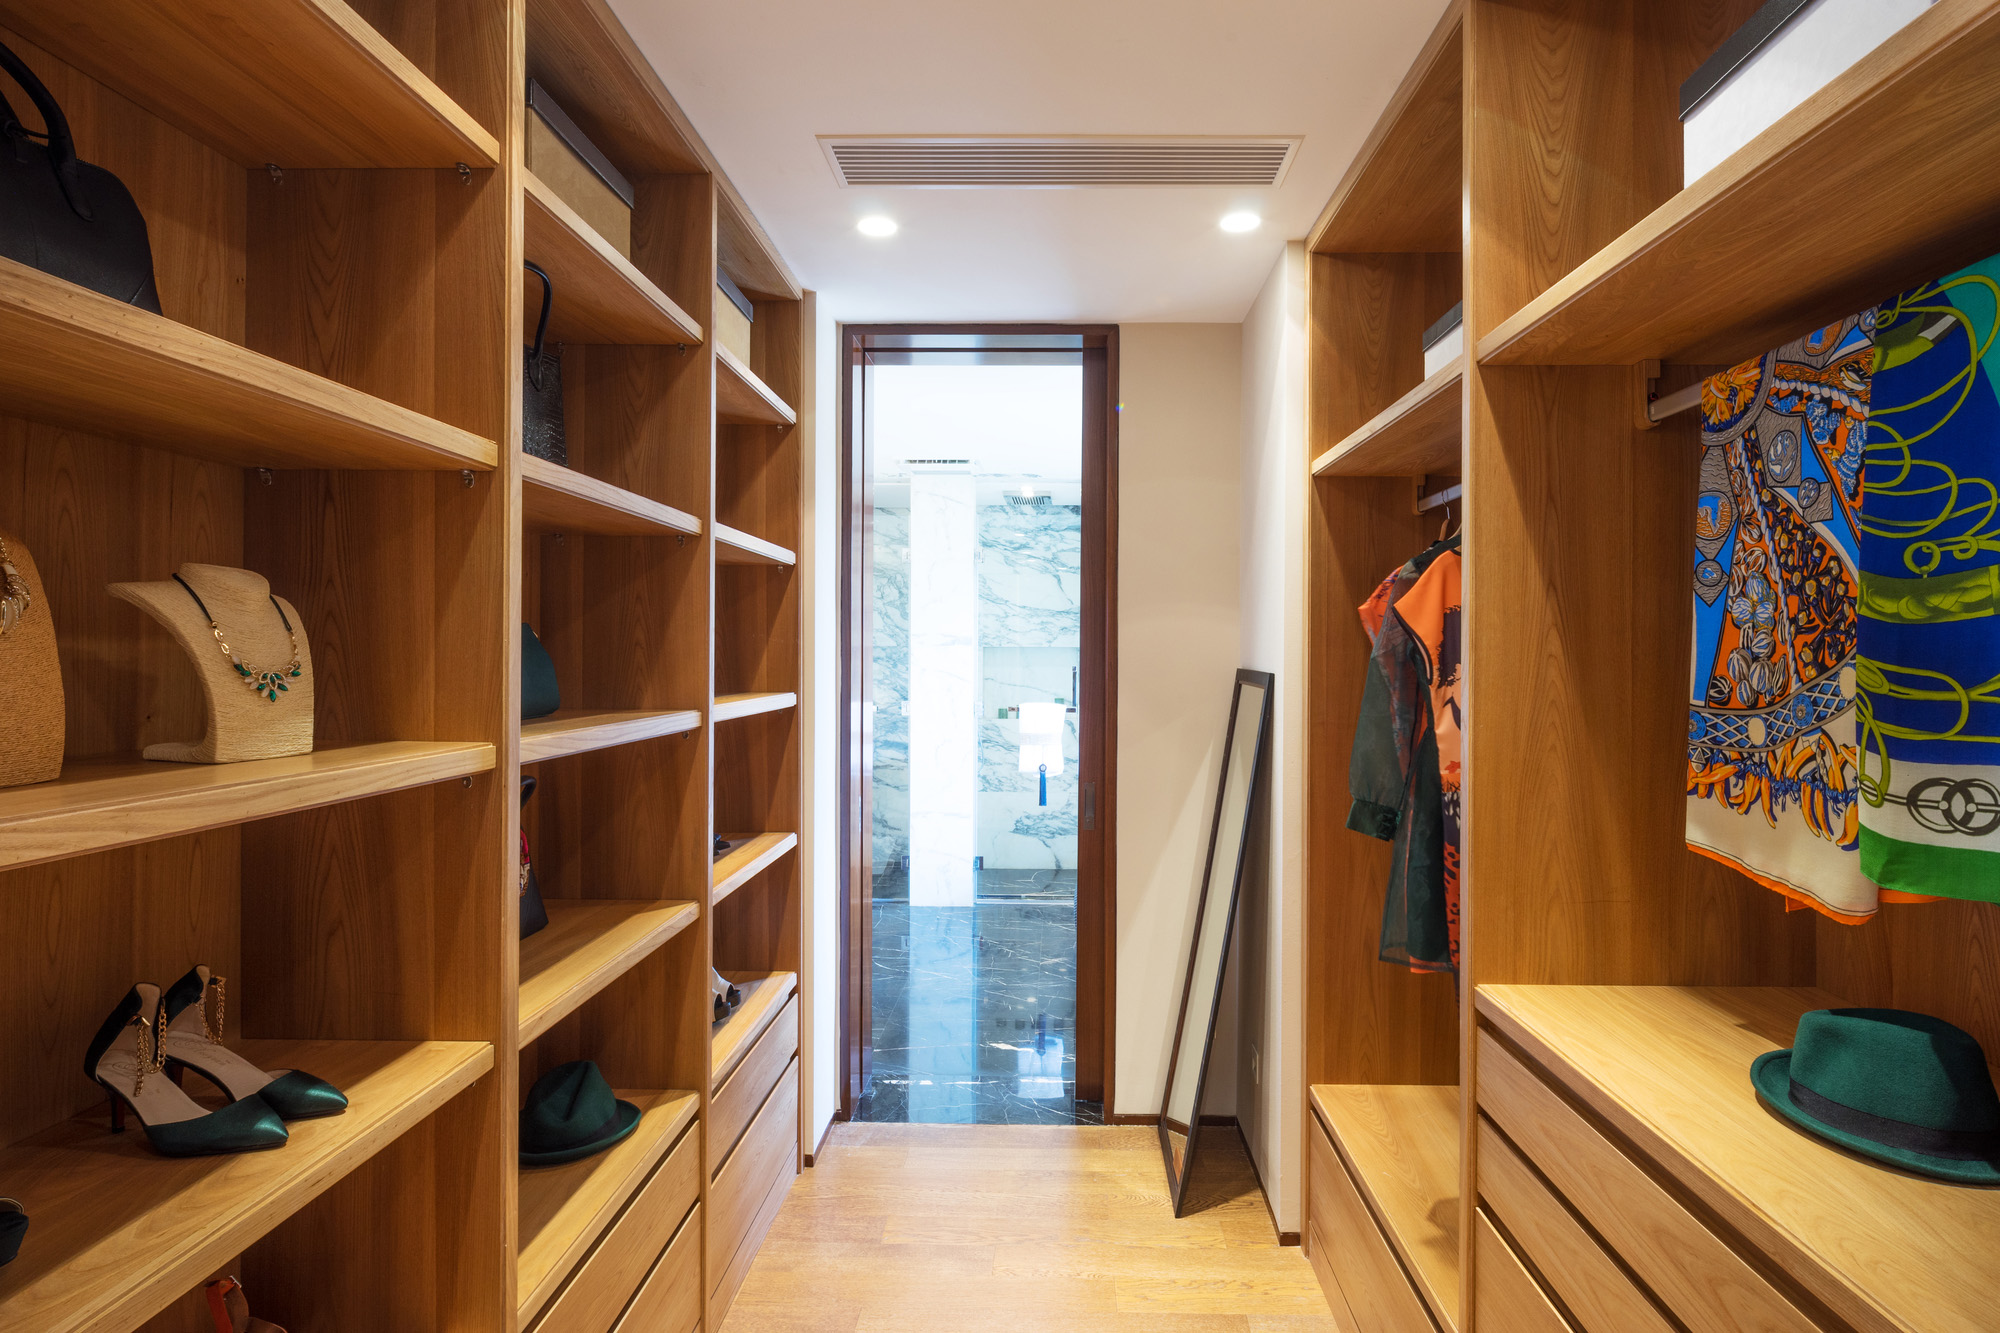 bespoke fitted wardrobes, wardrobe storage solutions, walk in wardrobe